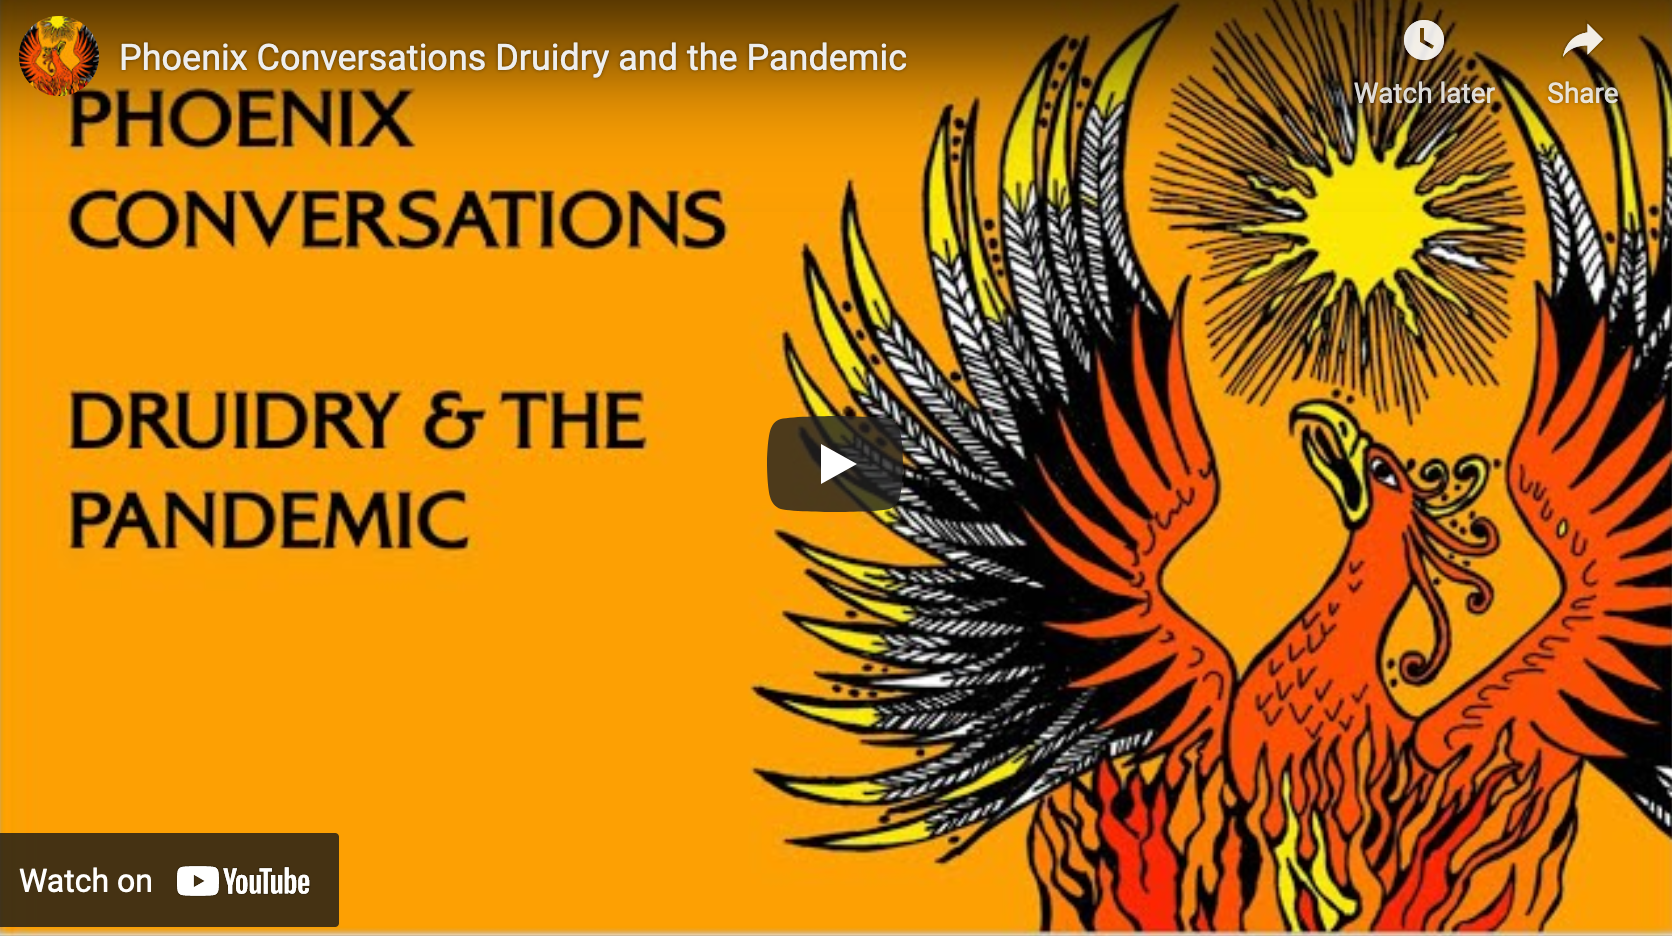 'Druidry and the Pandemic' panel from Phoenix Conversations